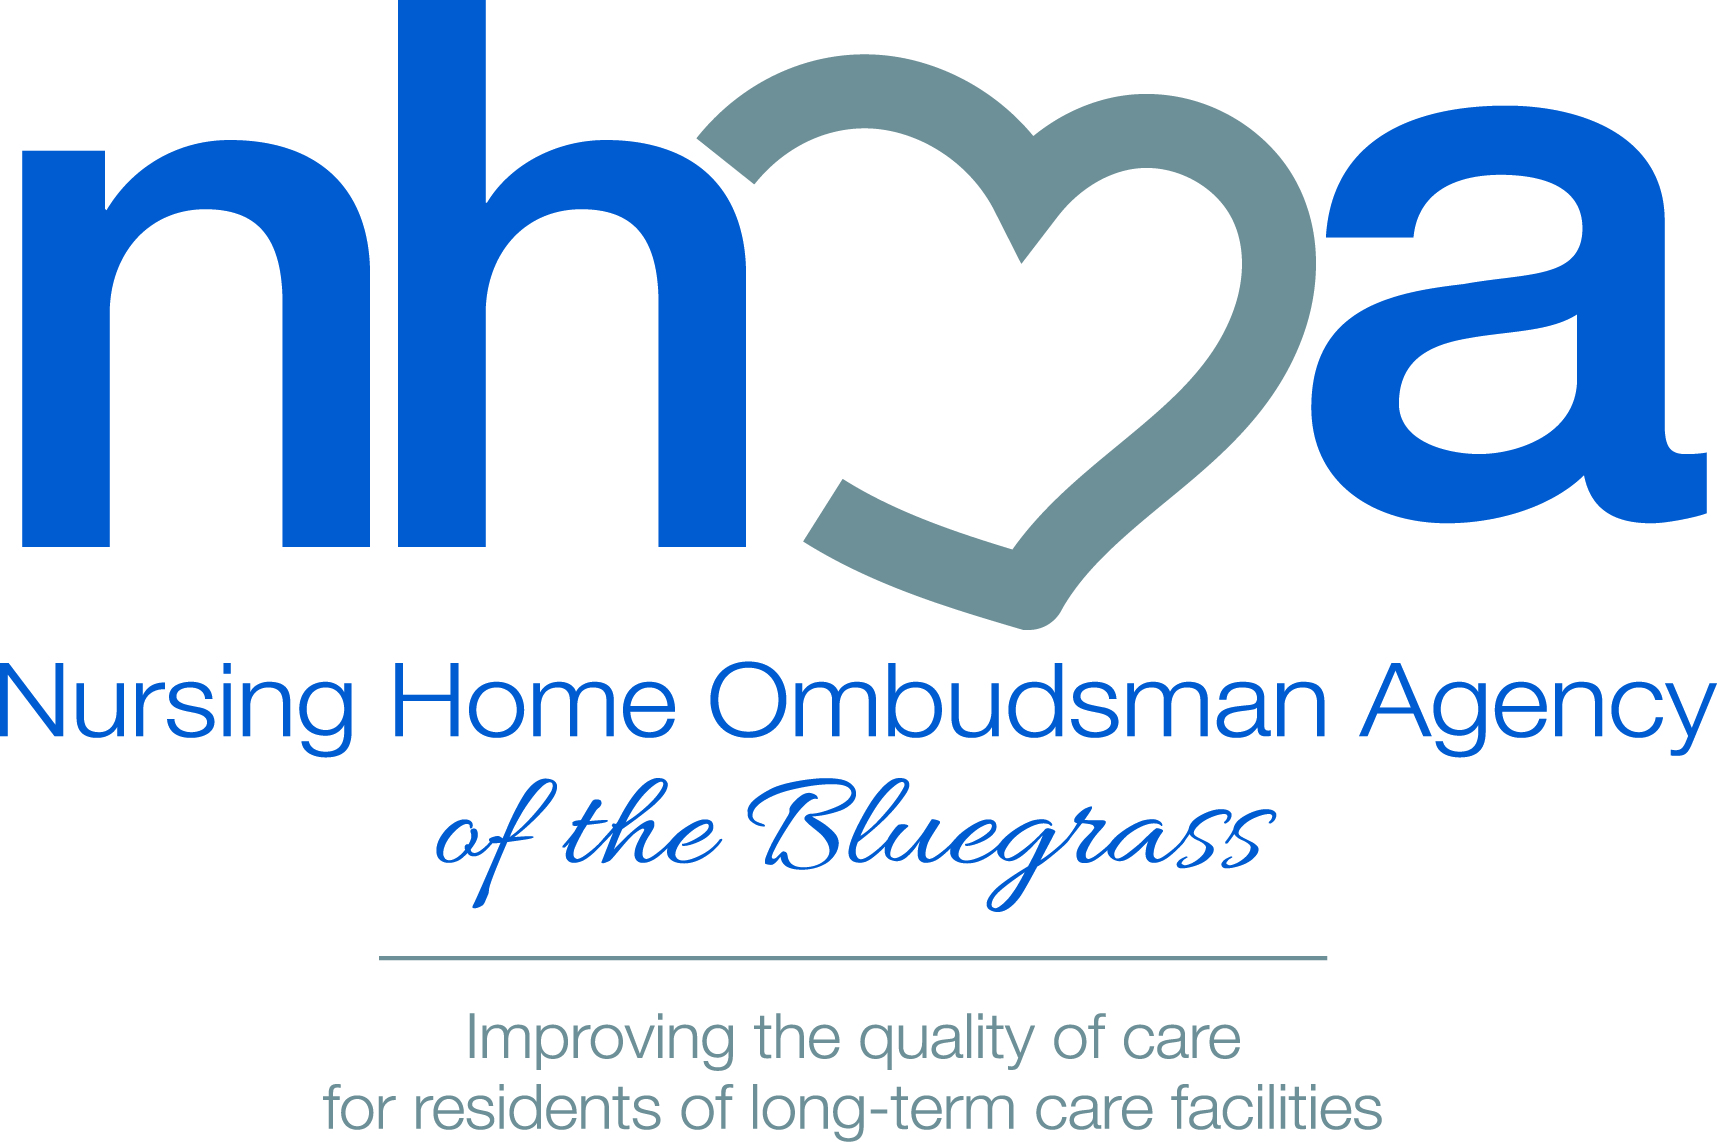 Nursing Home Ombudsman Agency